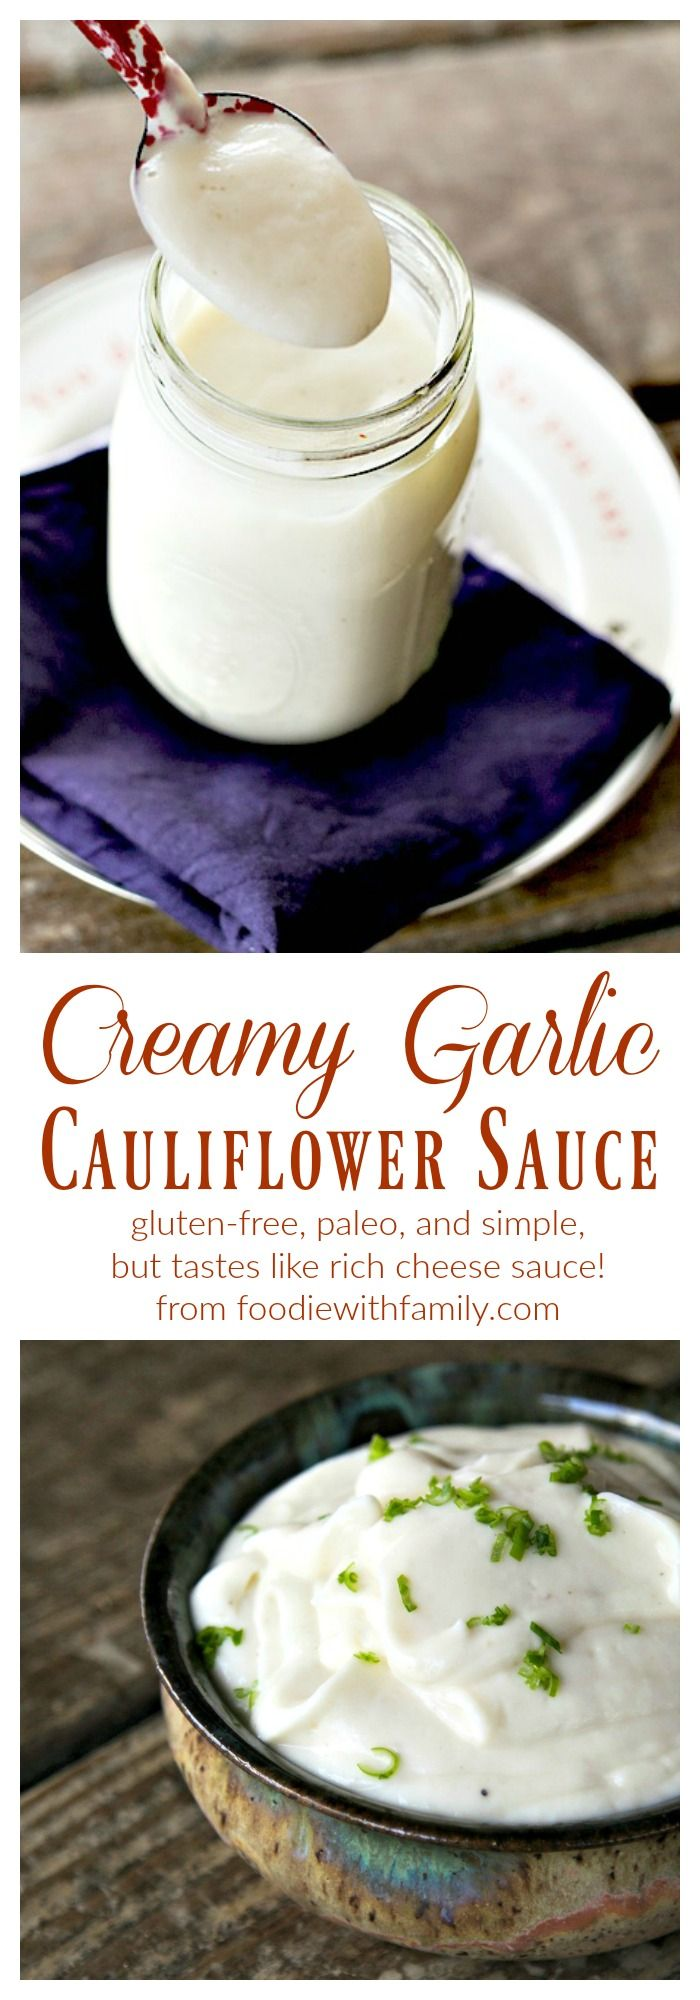 Creamy Garlic Cauliflower Sauce is gluten-free, paleo, and vegan but tastes like rich cheese sauce. It is made easily in your blender.